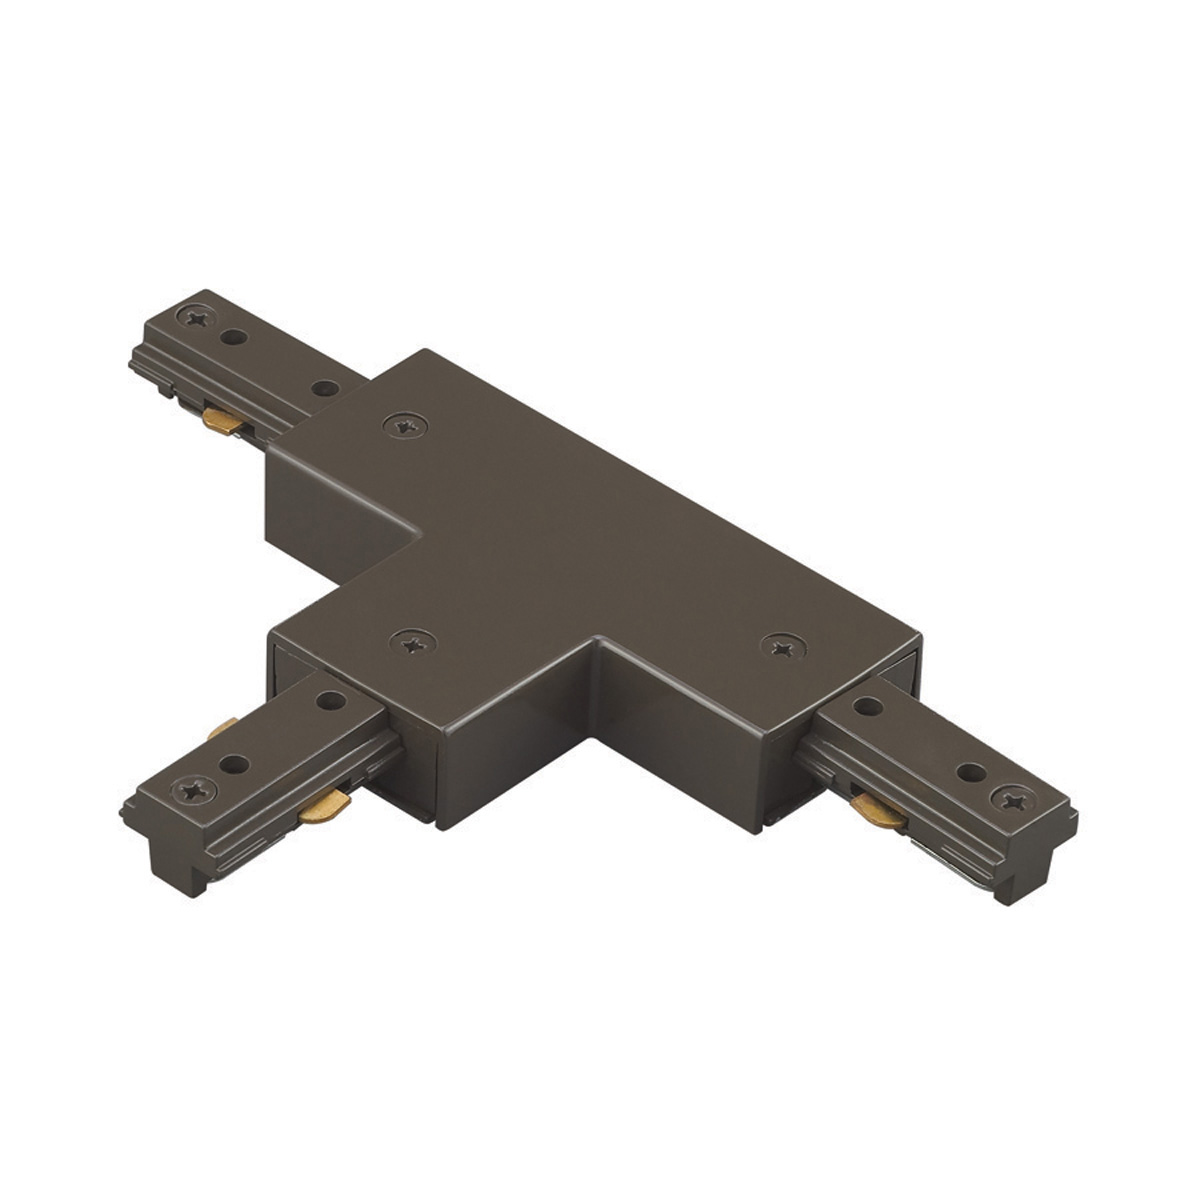 WAC Lighting HT CON 120V Halo Track InchT Inch Connector